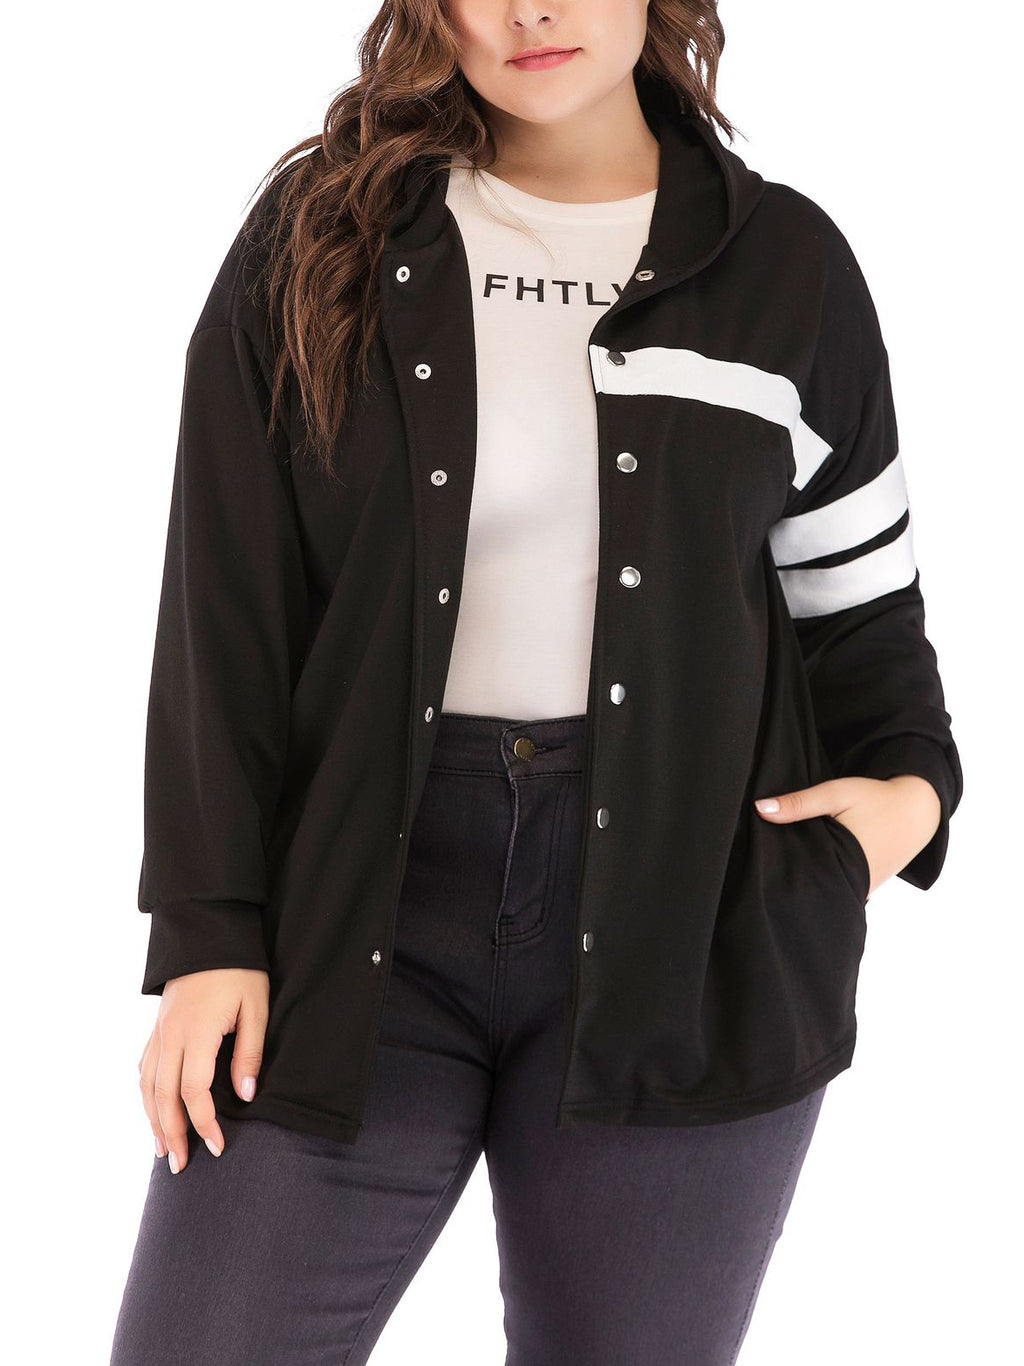 Plus Size Single-breasted Hooded Jacket